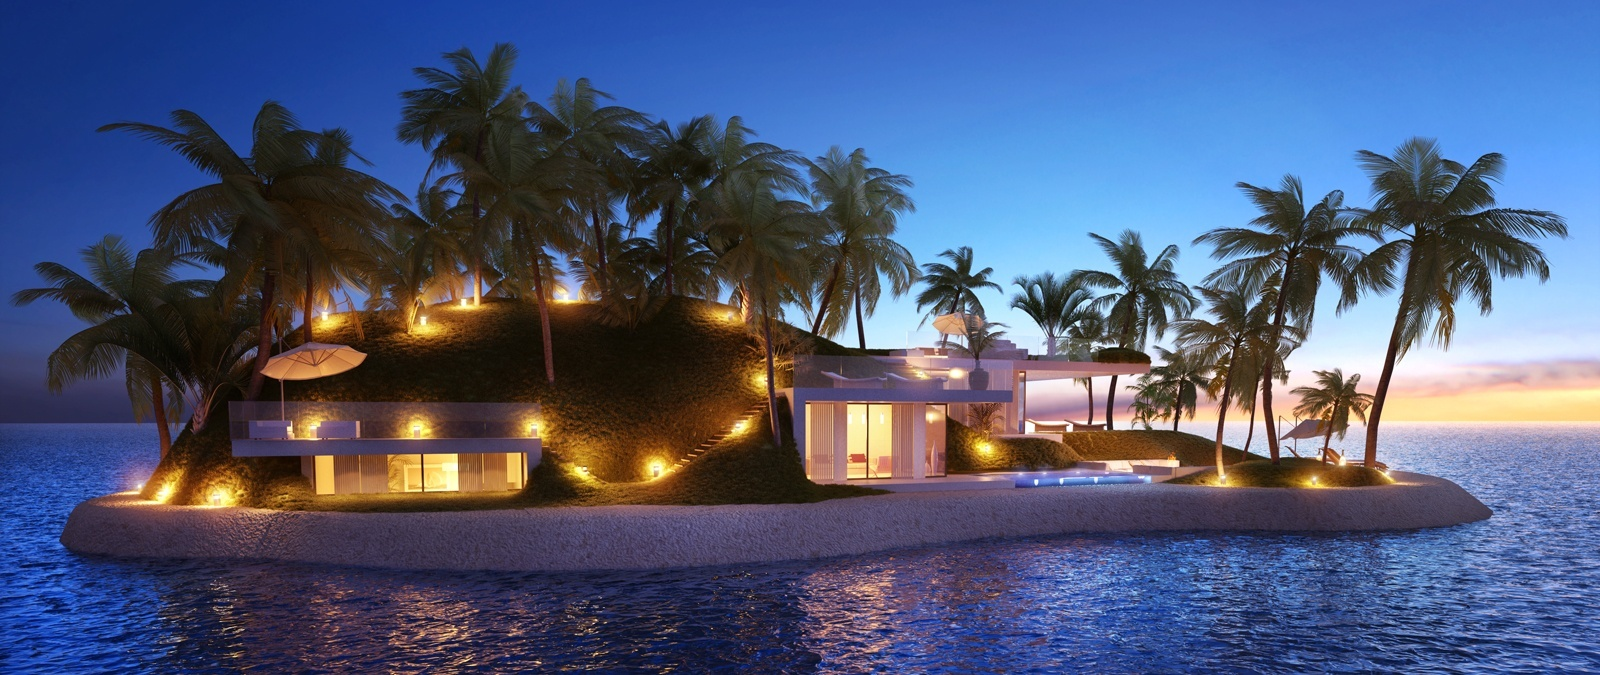 Designed by famed Dutch architect Koen Olthuis, Amillarah Private Islands are tailor-made, eco-friendly floating residences offering a truly unique lifestyle experience.